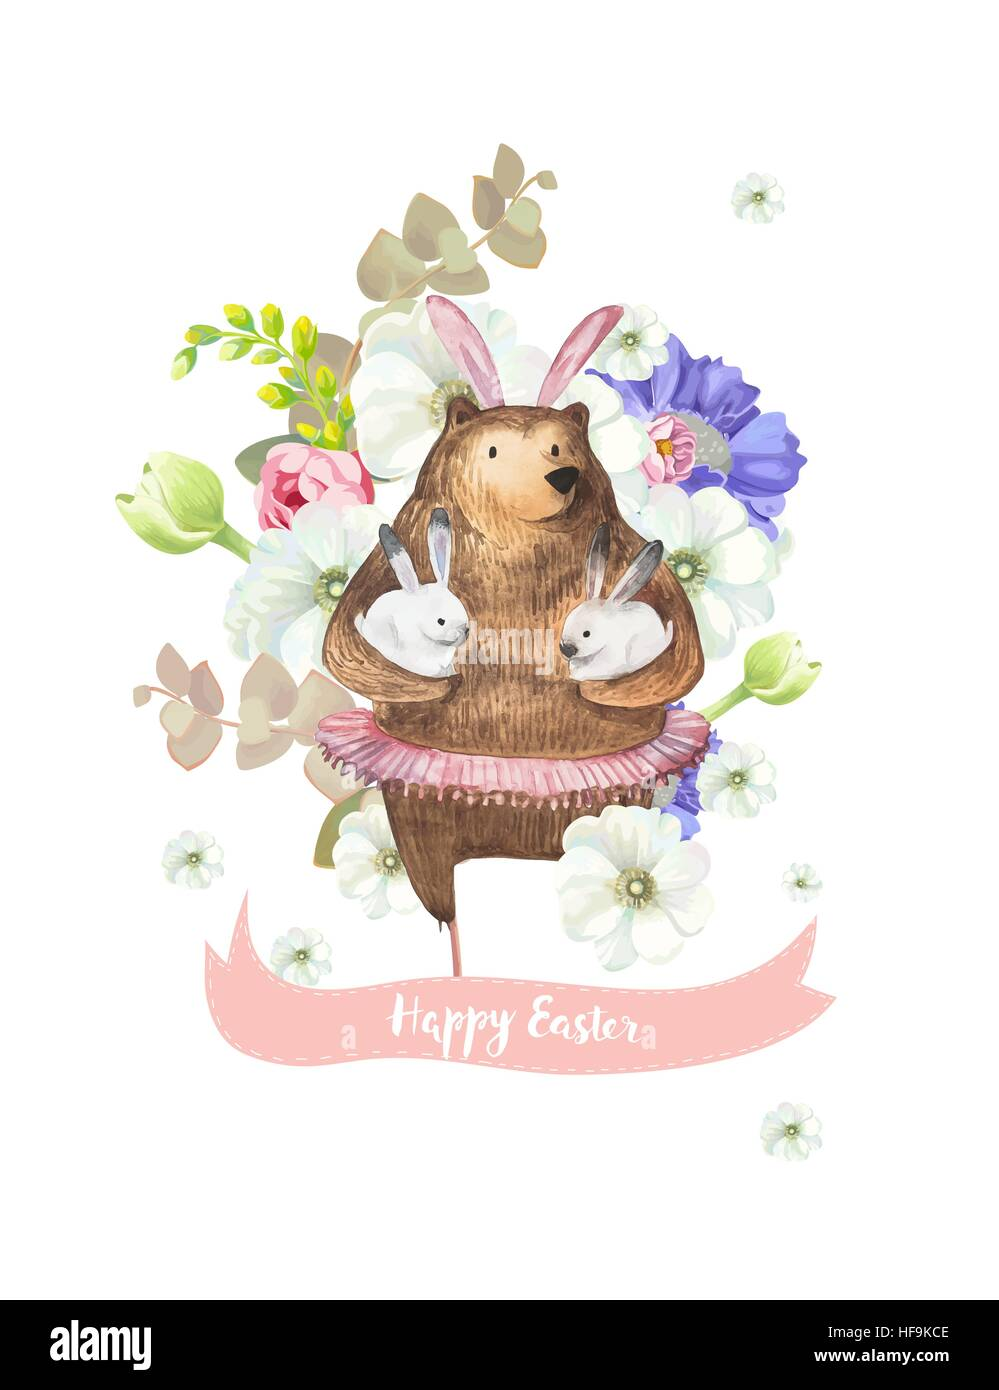 Happy easter greeting card with bunch of beautiful spring flowers on happy easter greeting card with bunch of beautiful spring flowers on background and funny bear in ballet tutu holding two little white rabbits m4hsunfo